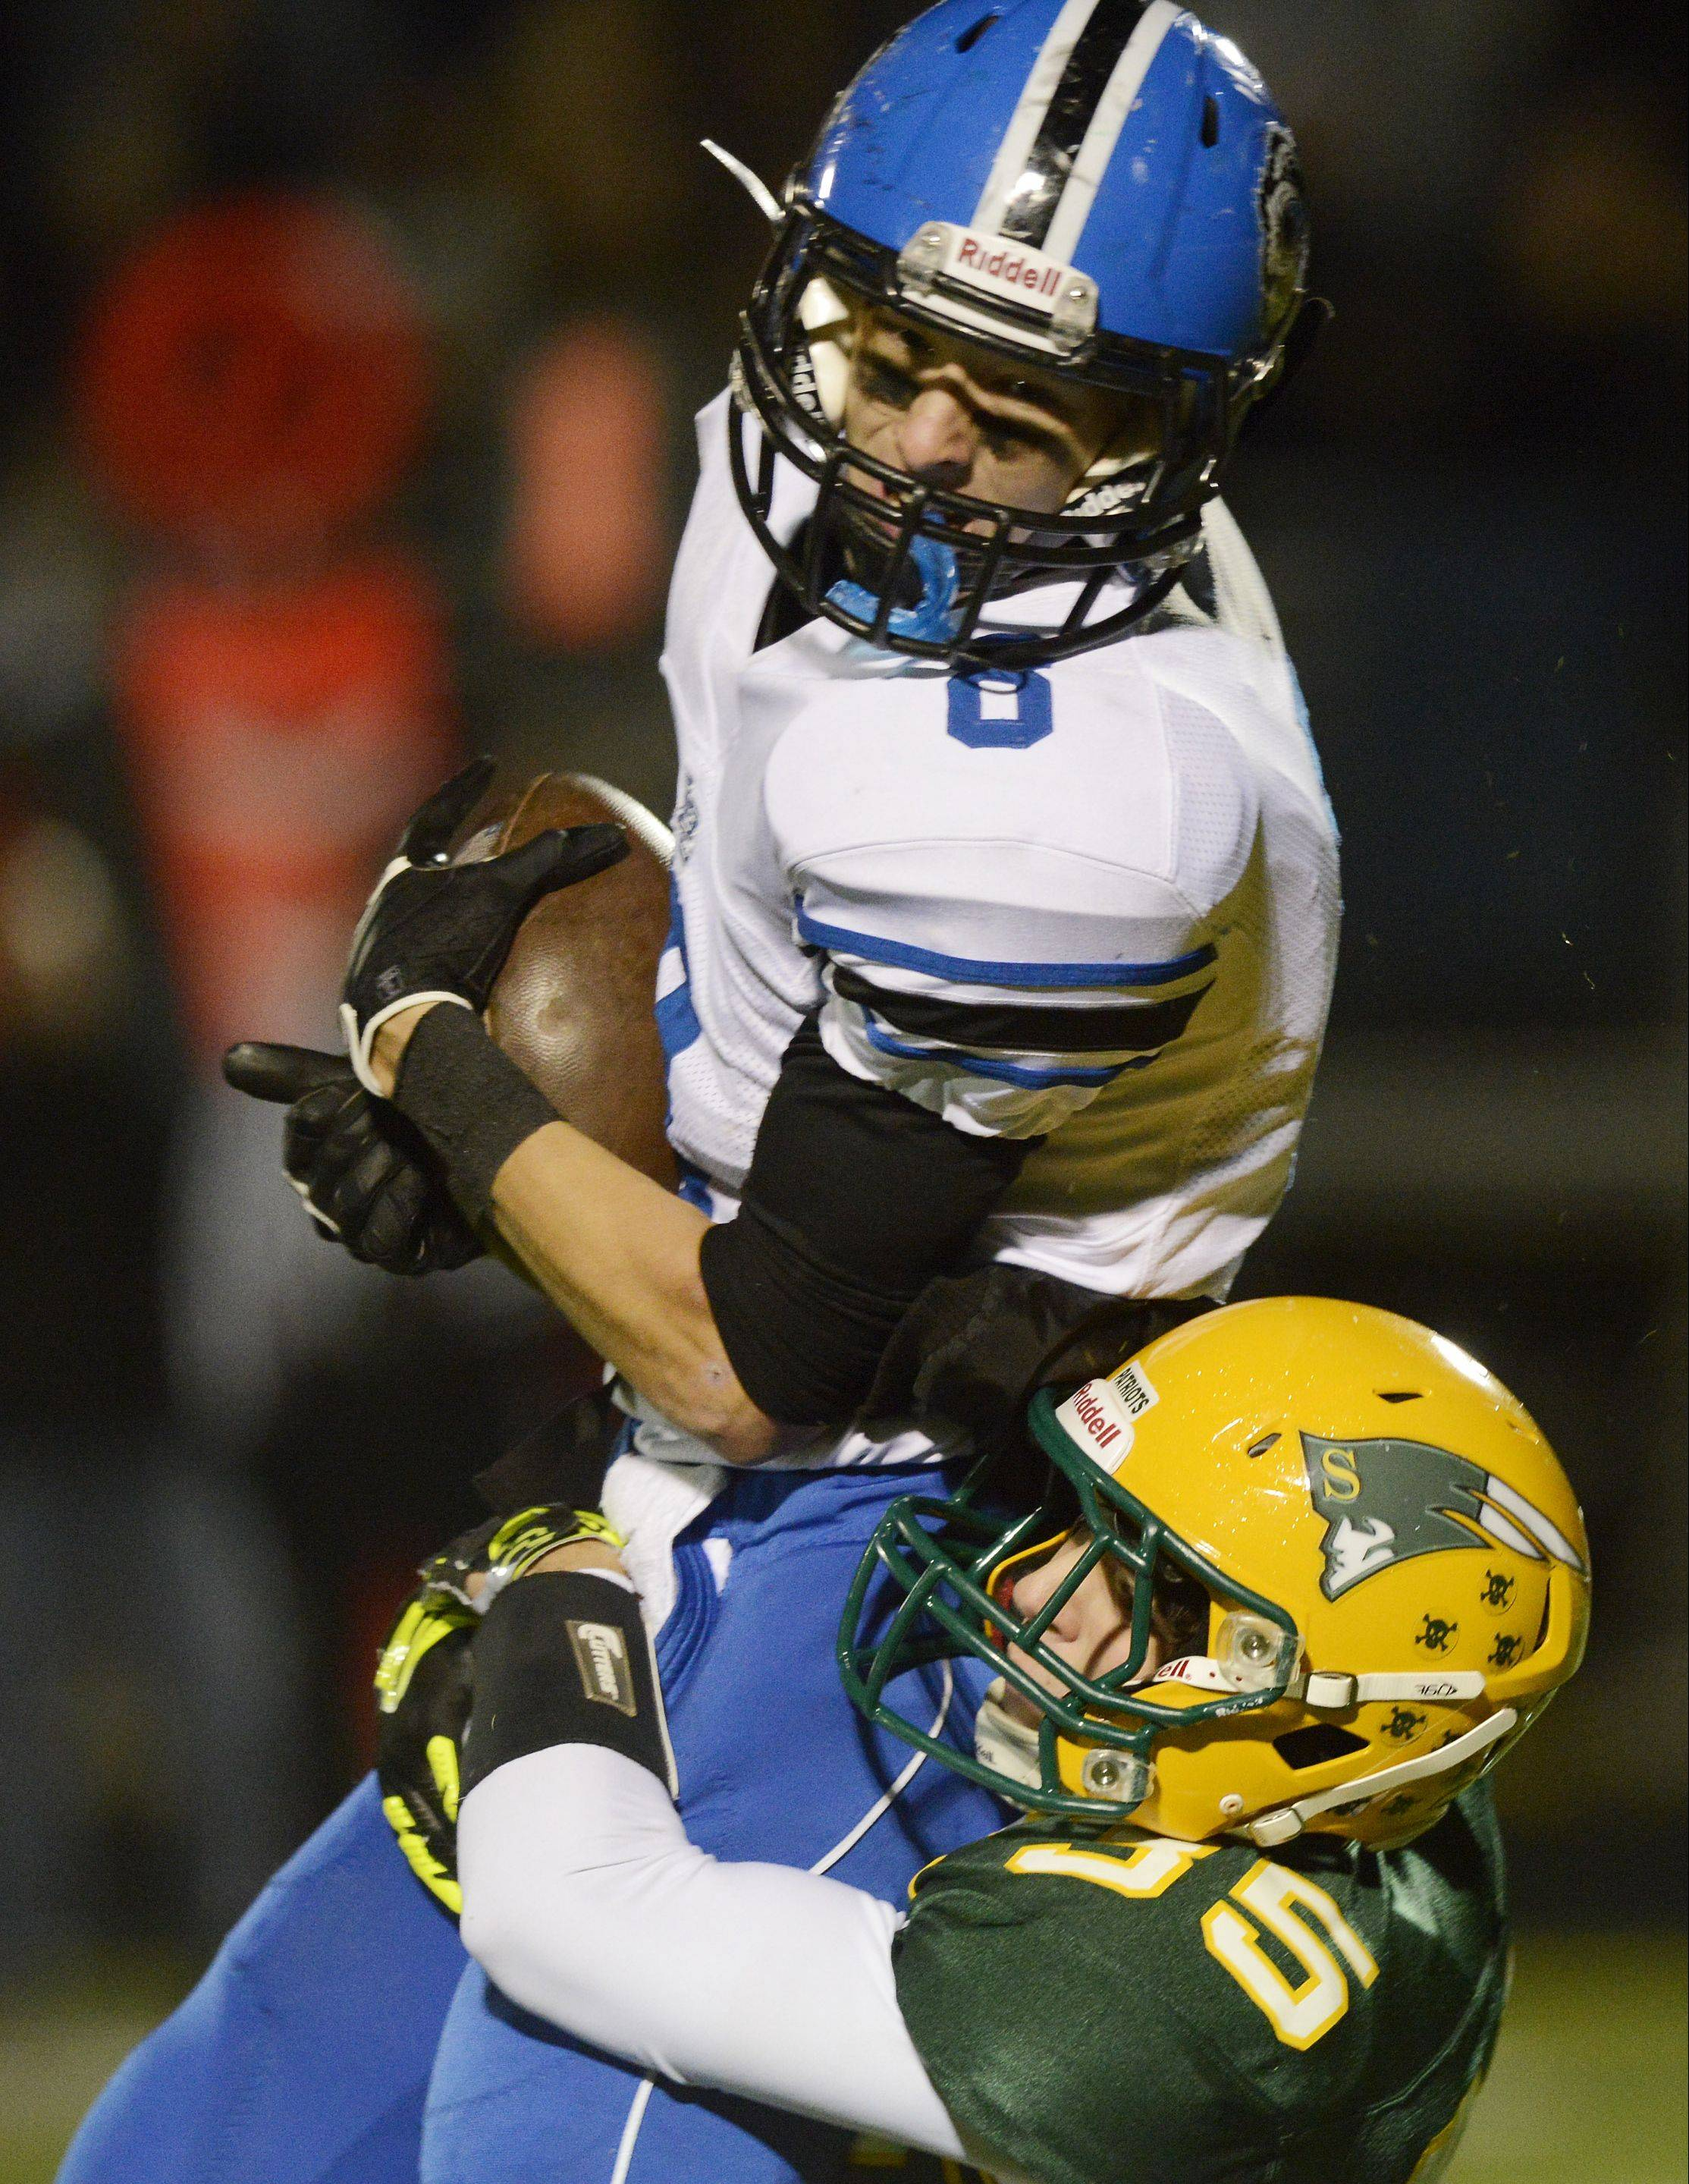 Lake Zurich's Brent Sweetwood is tackled by Stevenson's Sam Oriatti after making a catch during Friday's NSC Lake showdown in Lincolnshire.